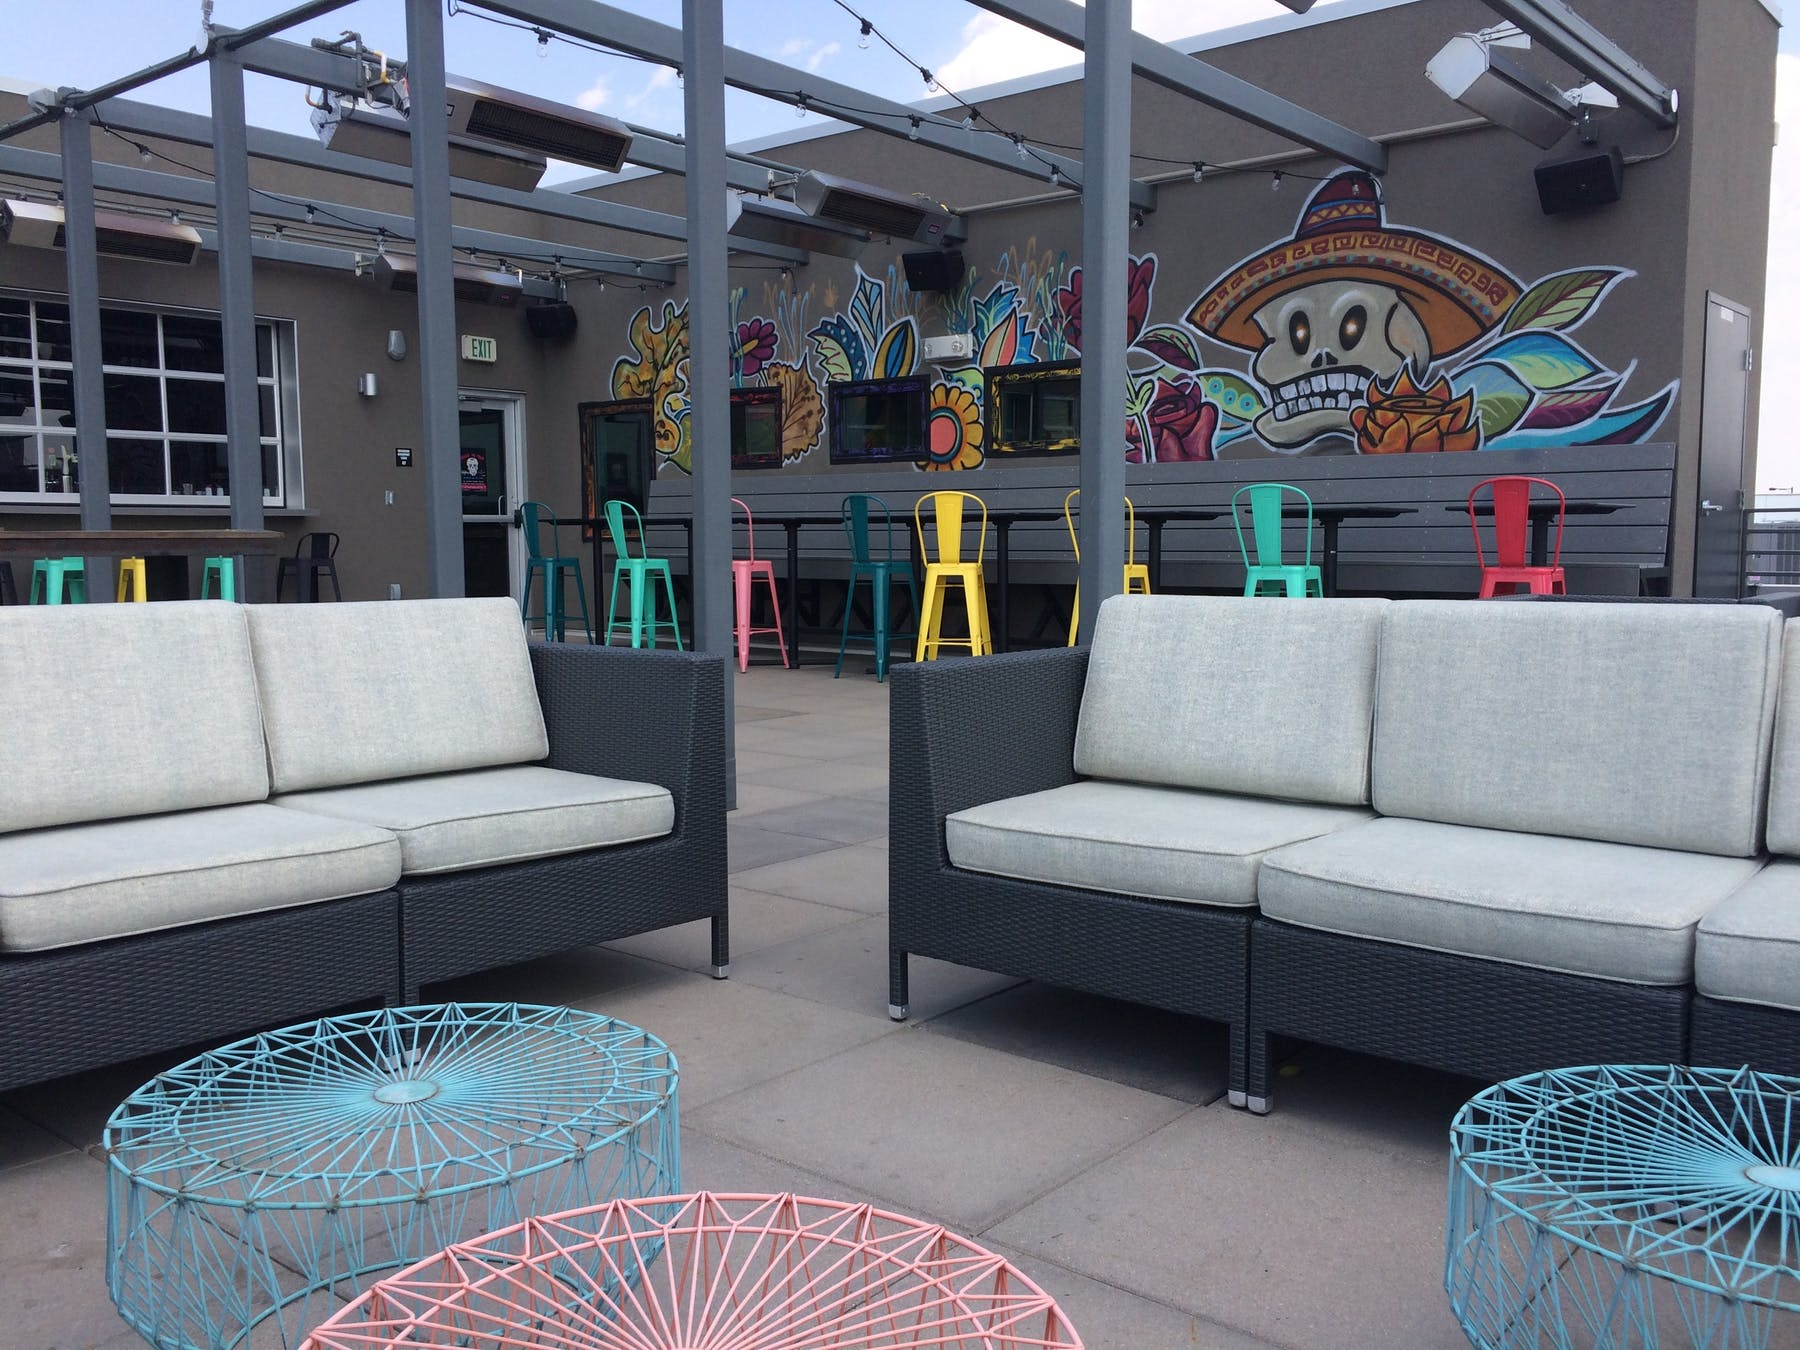 Los Chingones Stapleton - Los Chingones - Rooftop10155 E 29th Dr. #110Denver, CO 80238Join us Friday night for a meet & Greet dinner social with Dr. Lawrence Einhorn and other TC experts.